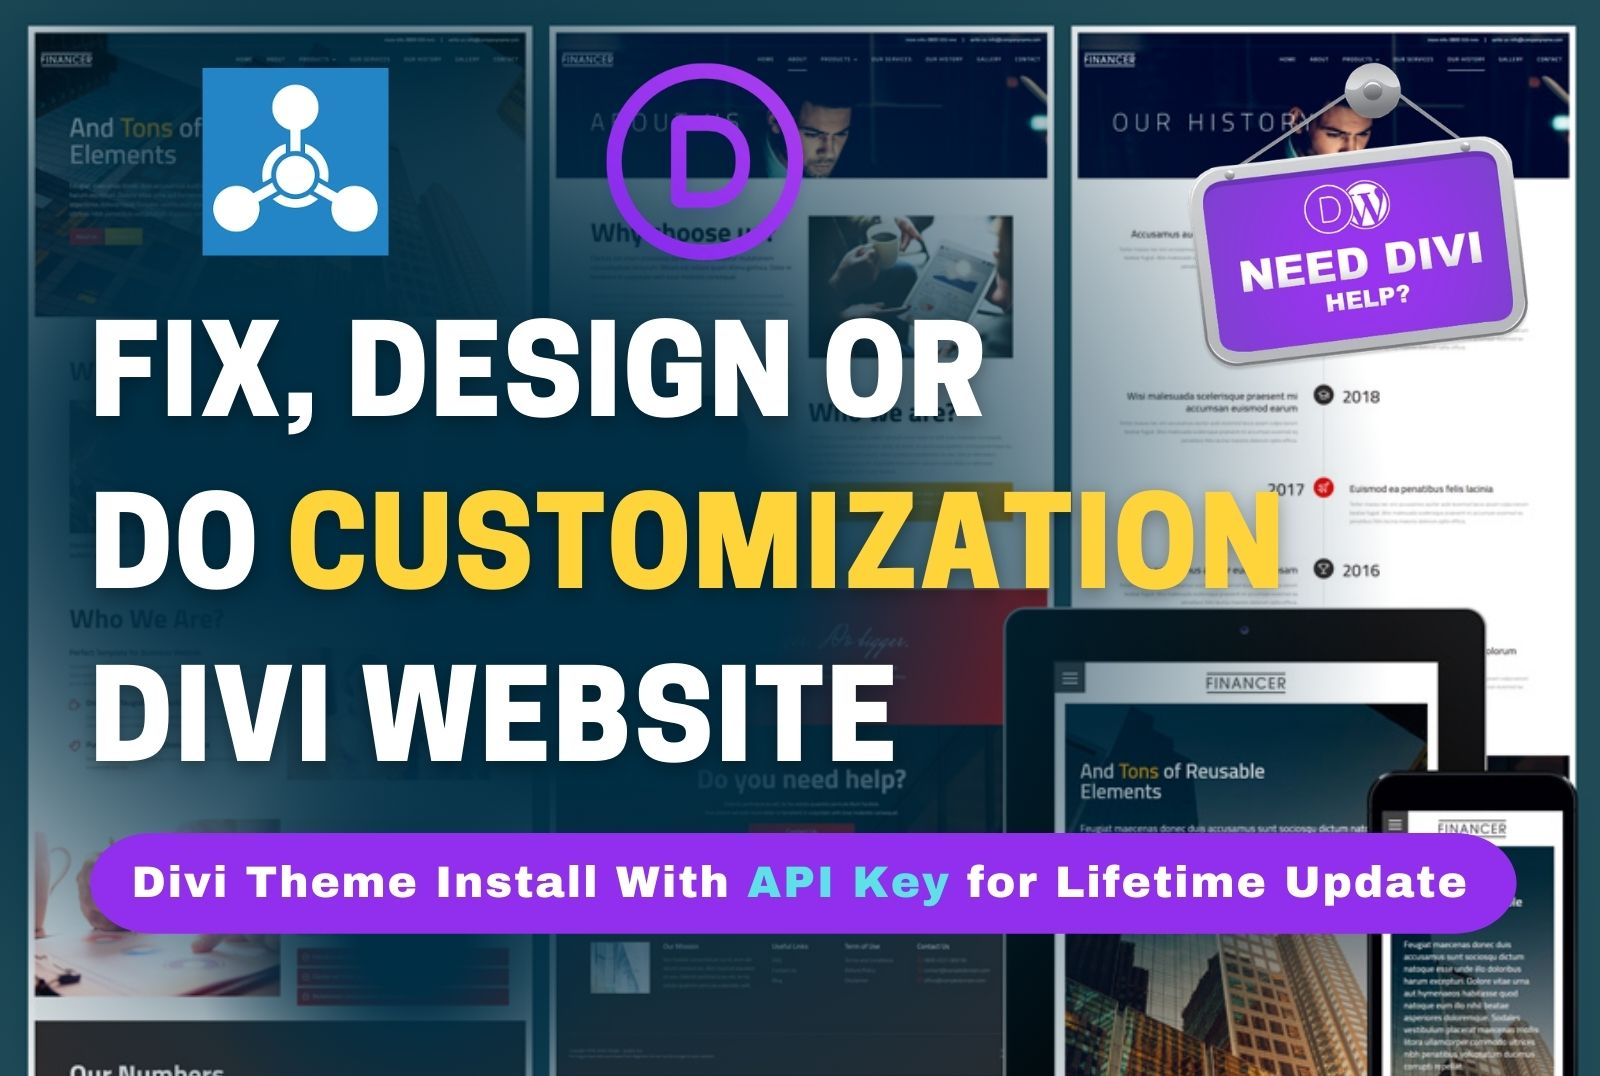 I am expert to build Divi website,  Divi theme customization,  Divi error fixing